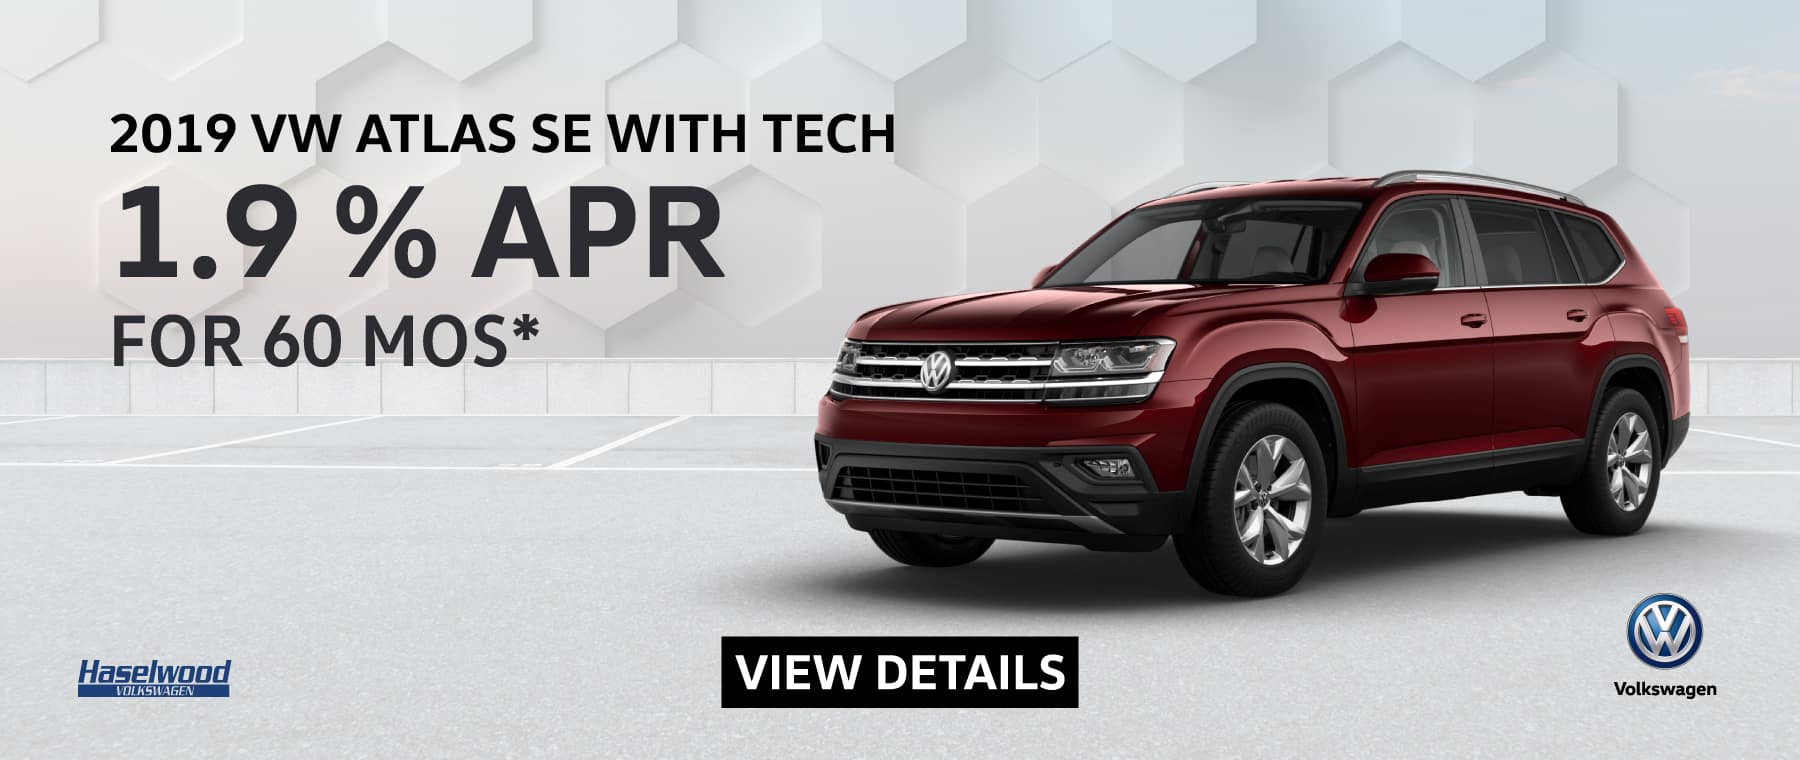 2019 Volkswagen Atlas SE w/Technology  (Featured Vehicle)  1.9% APR for 60 mos.    * Offer valid on 2019 Volkswagen Atlas SE w/Technology. 1.9% APR for 60 mos. MSRP starting at $43,420.  Valid on Vin: 1V2UR2CA5KC519939, 1V2UR2CA3KC520474. For highly qualified customers on approved top tier credit through Volkswagen Credit. Subject to credit approval. 60 monthly payments required. Down payment and monthly payment may vary. Excludes state and local taxes, tags, registration and title, insurance and dealer charges.  A negotiable dealer documentary service fee of up to $150 may be added to the sale price or capitalized cost. See dealer for complete details and restrictions. 6 years/72,000 miles (whichever occurs first). New Vehicle Limited Warranty on MY2018 and newer VW vehicles, excluding e-Golf. See owner's literature or dealer for warranty exclusions and limitations. Exp. 9/3/2019.